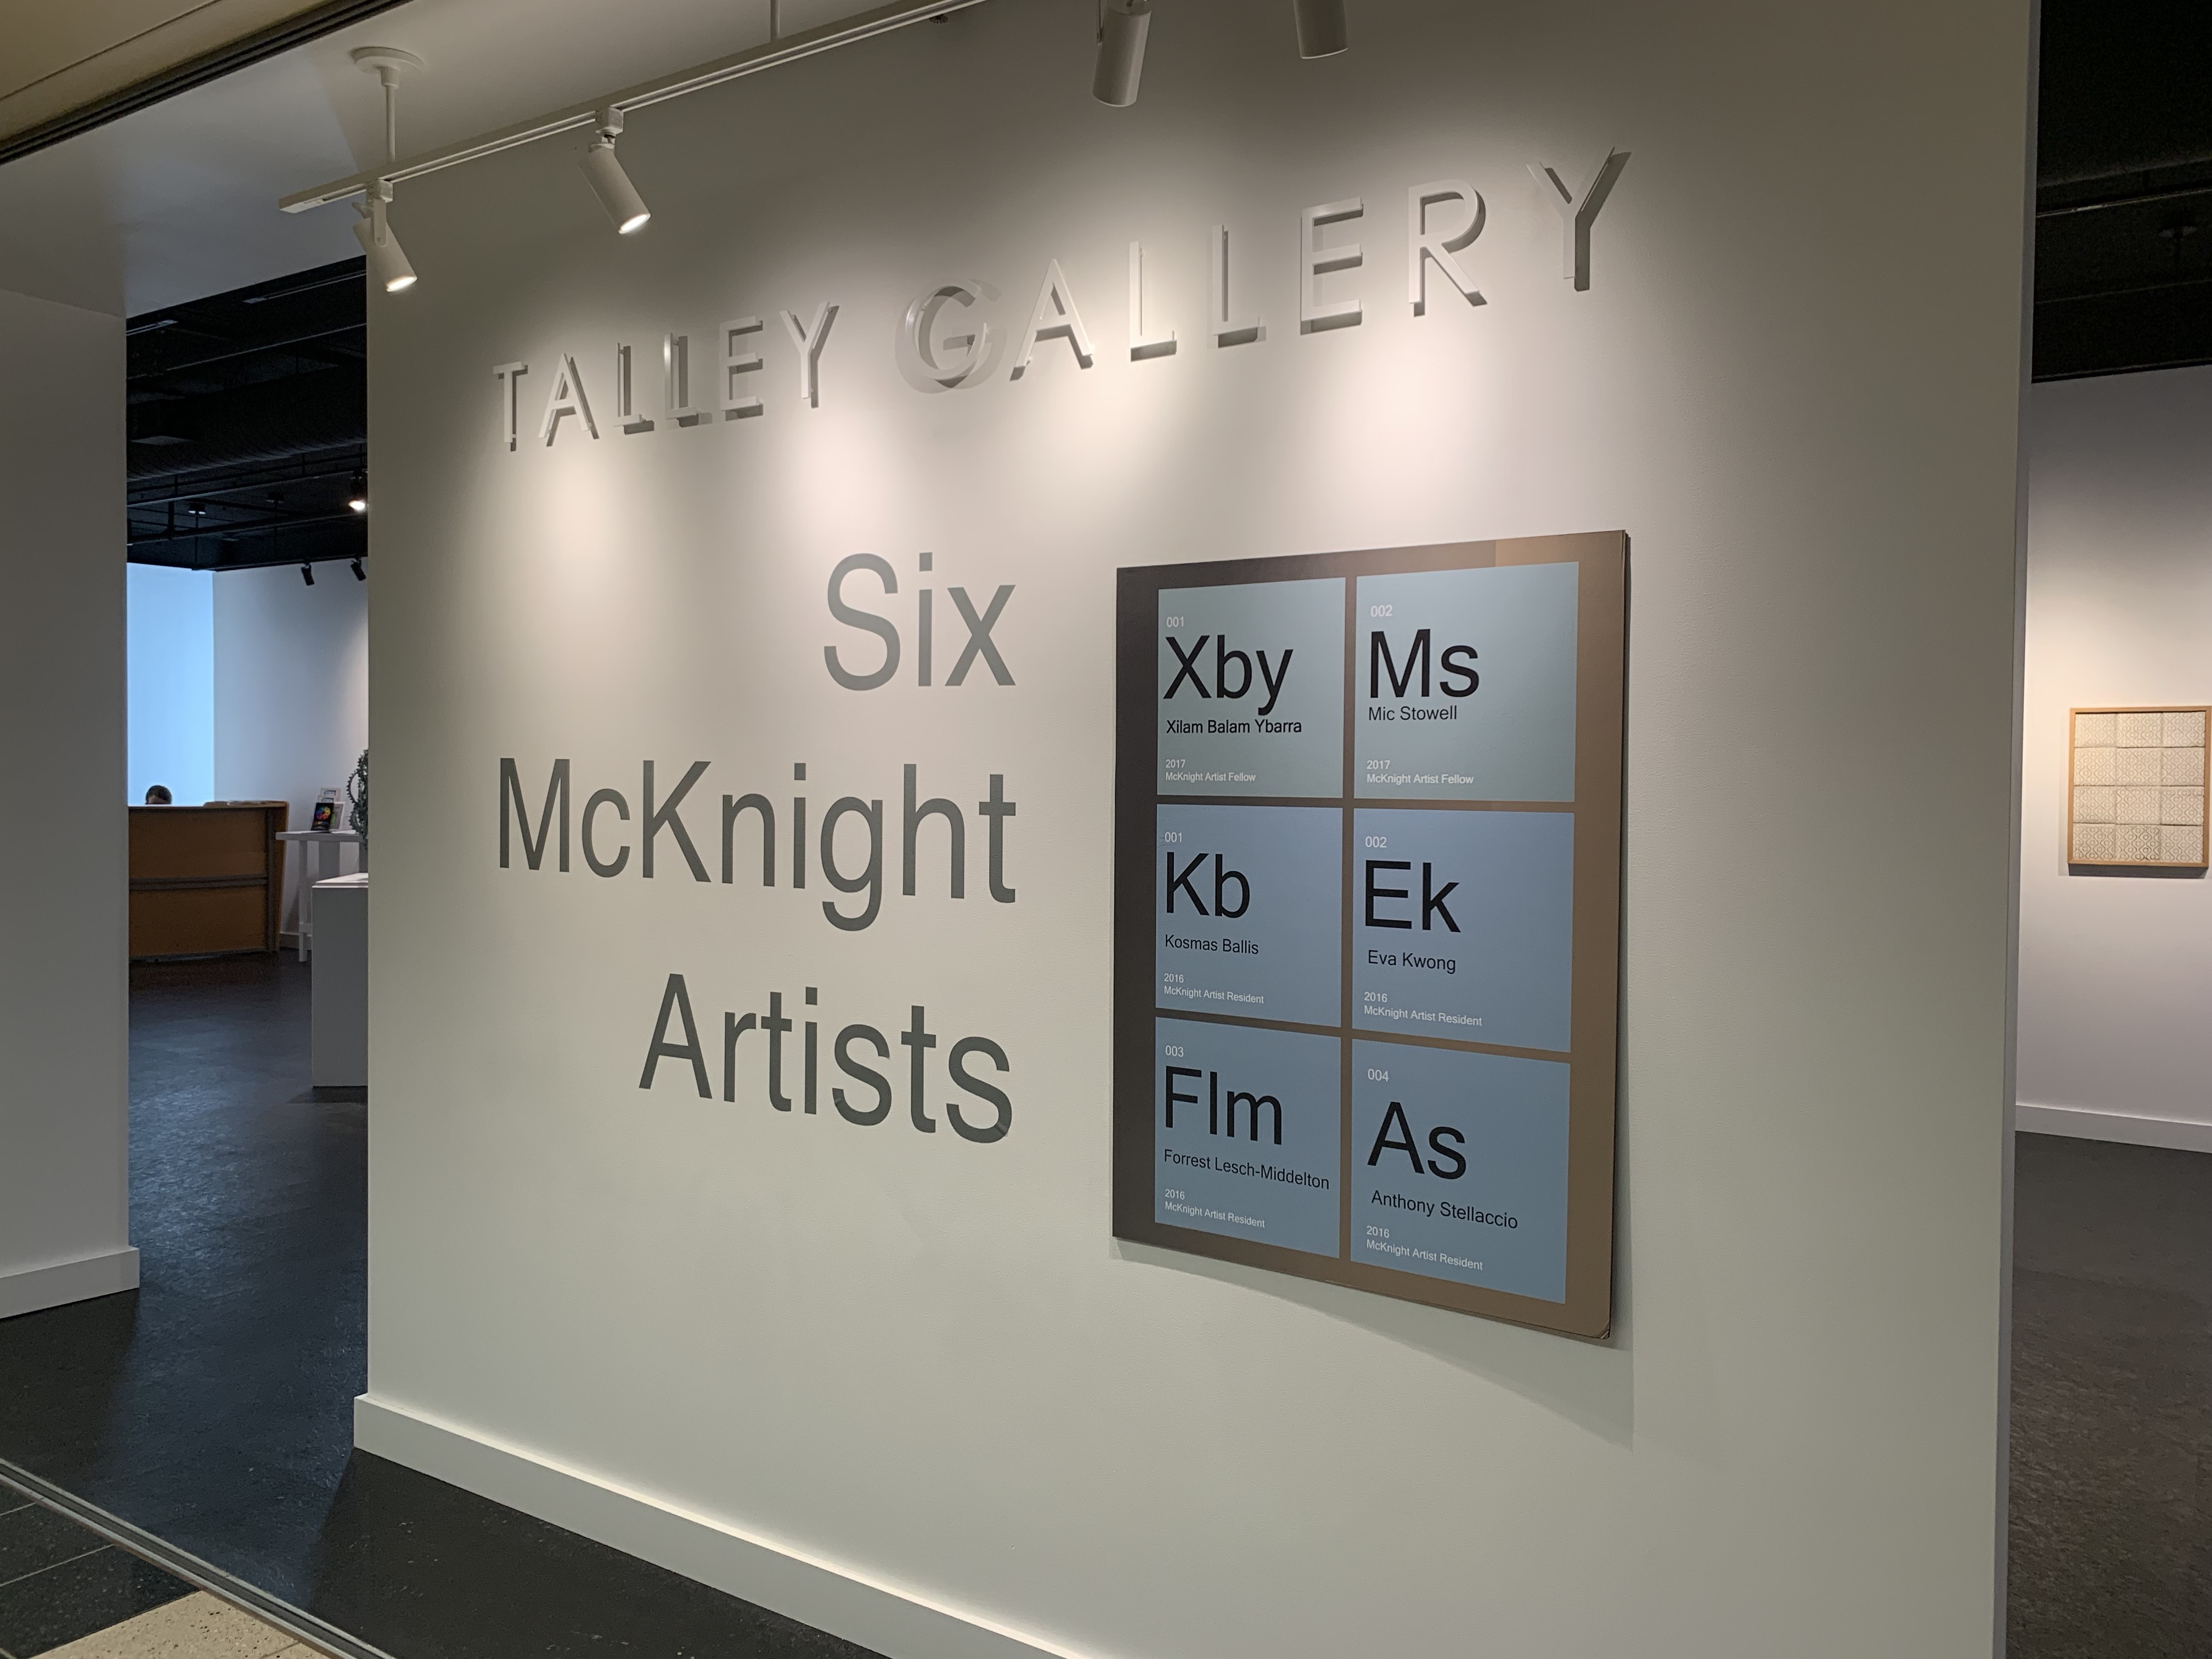 Art Gallery Artist Talley Gallery Features Work By Mcknight Foundation Artists